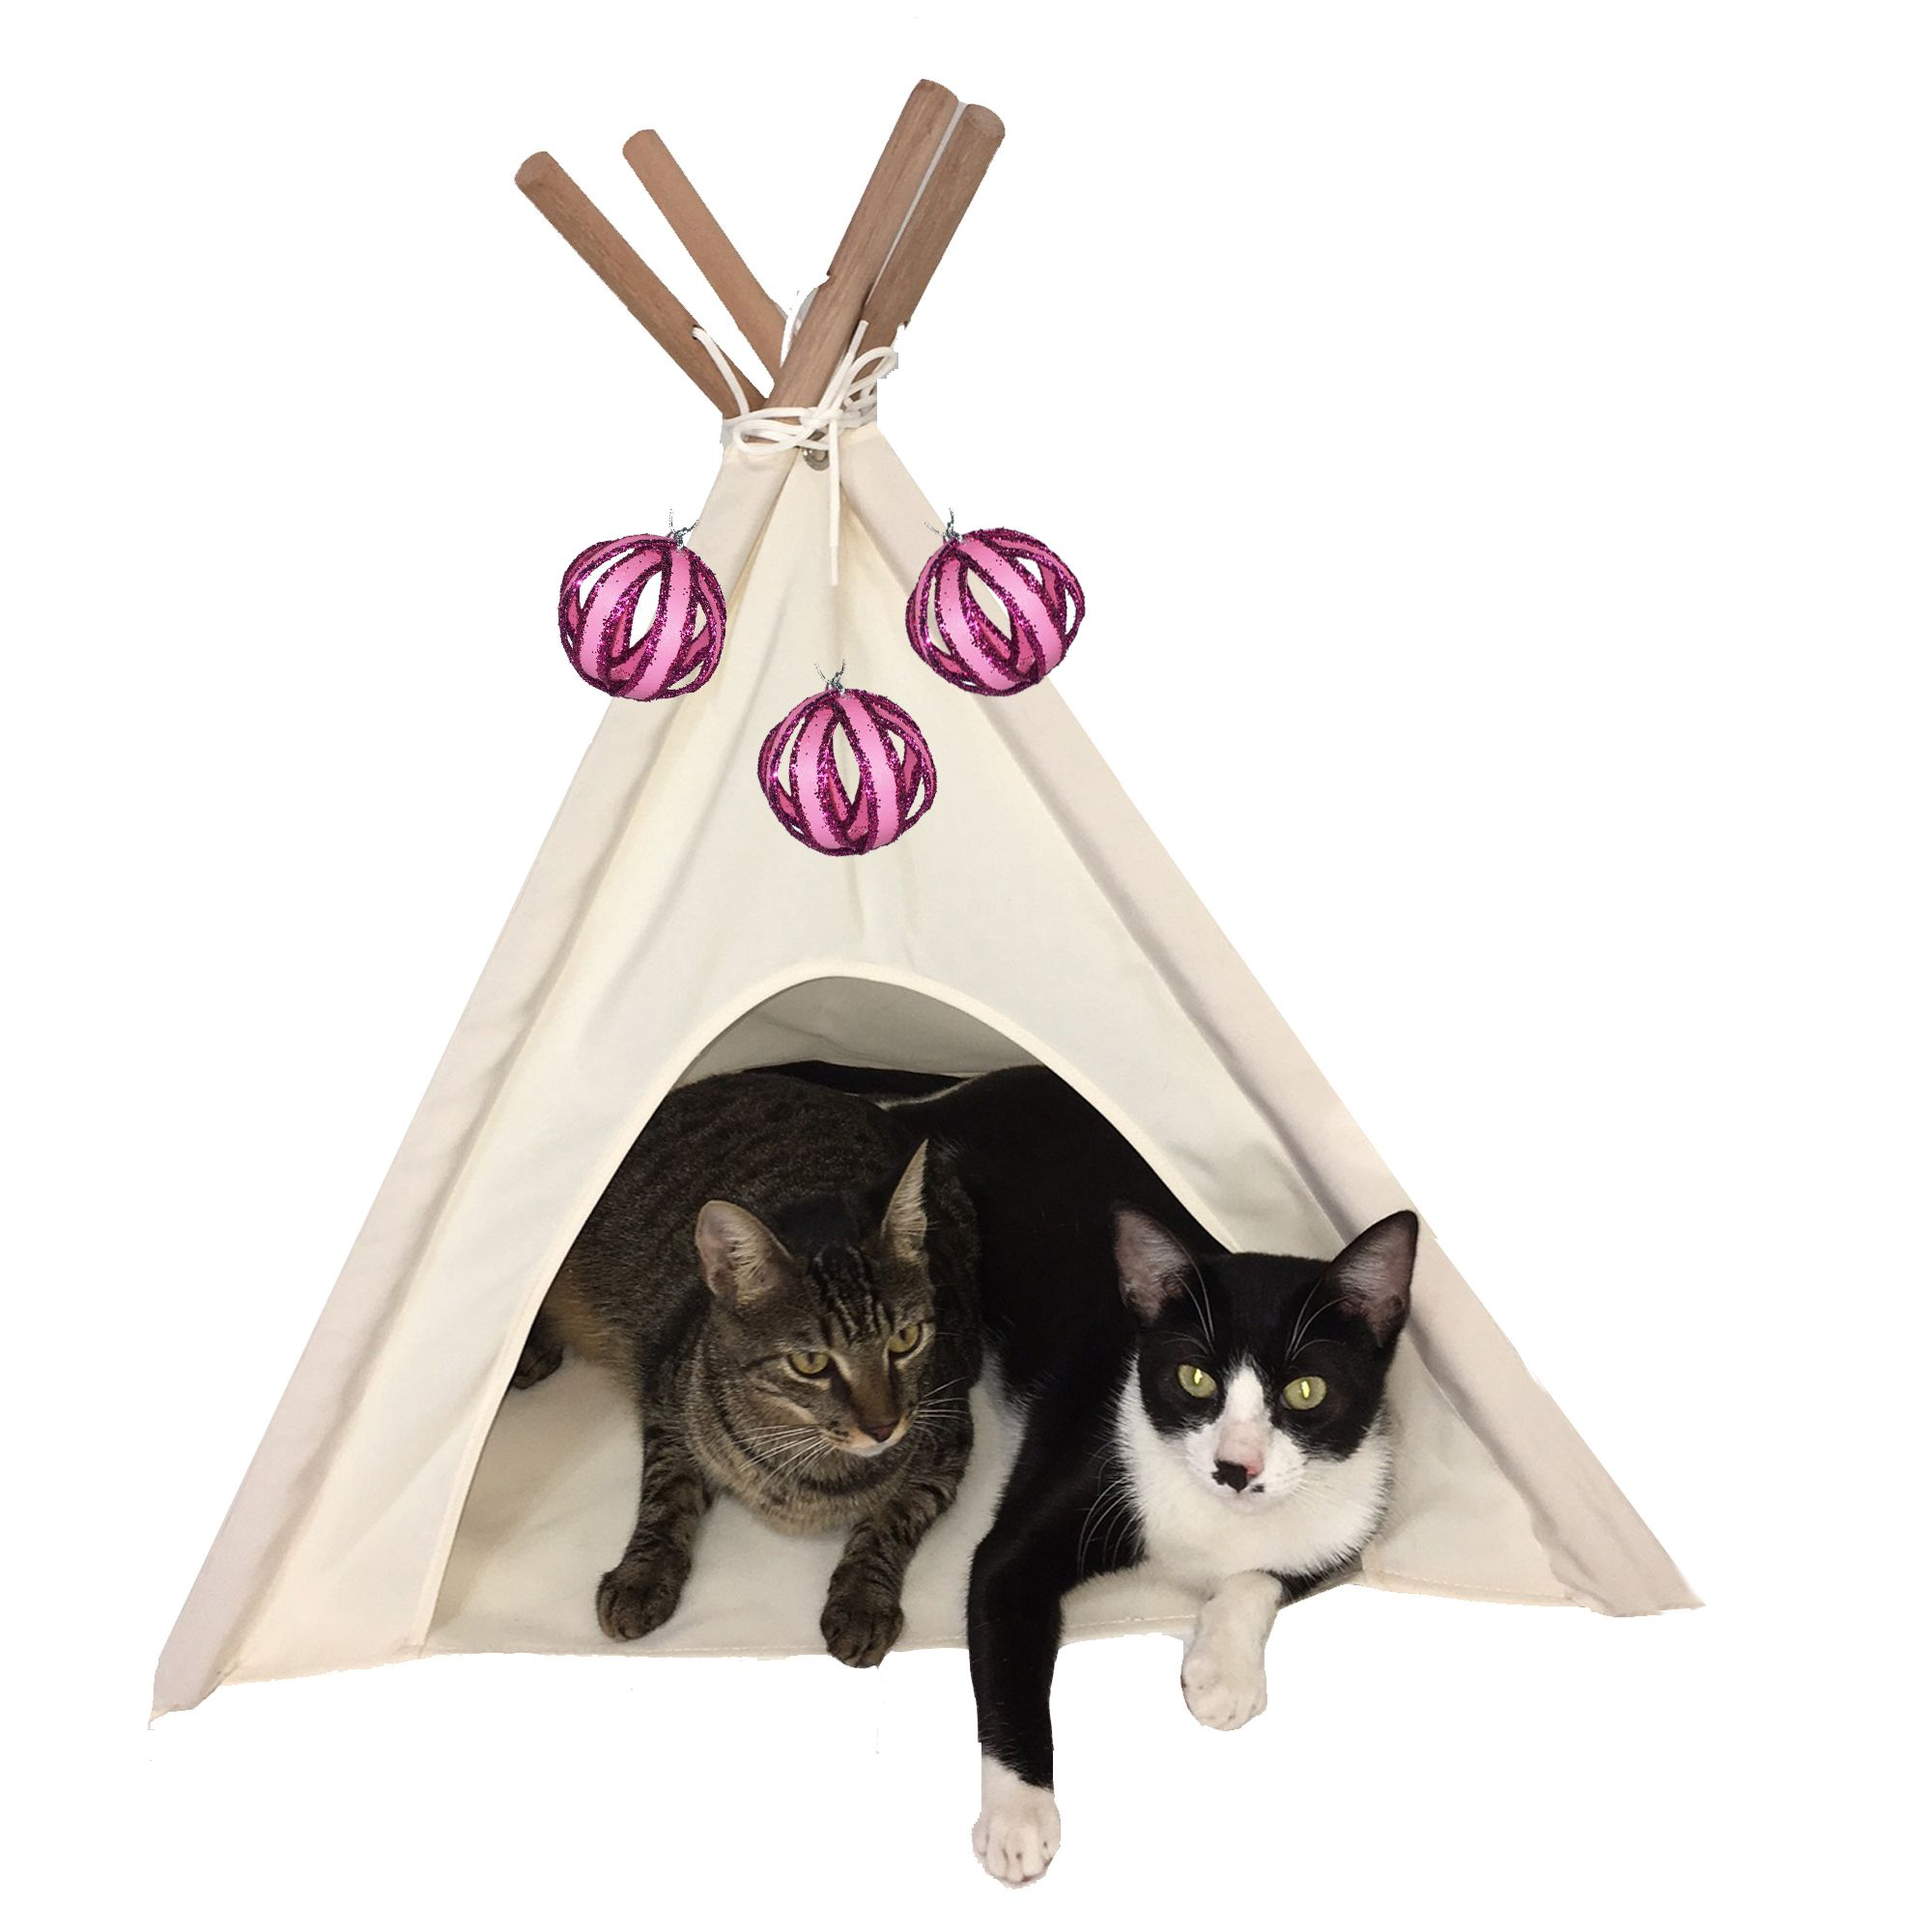 Idea by DT Home Furnishing on Creamy white cat tent Cat